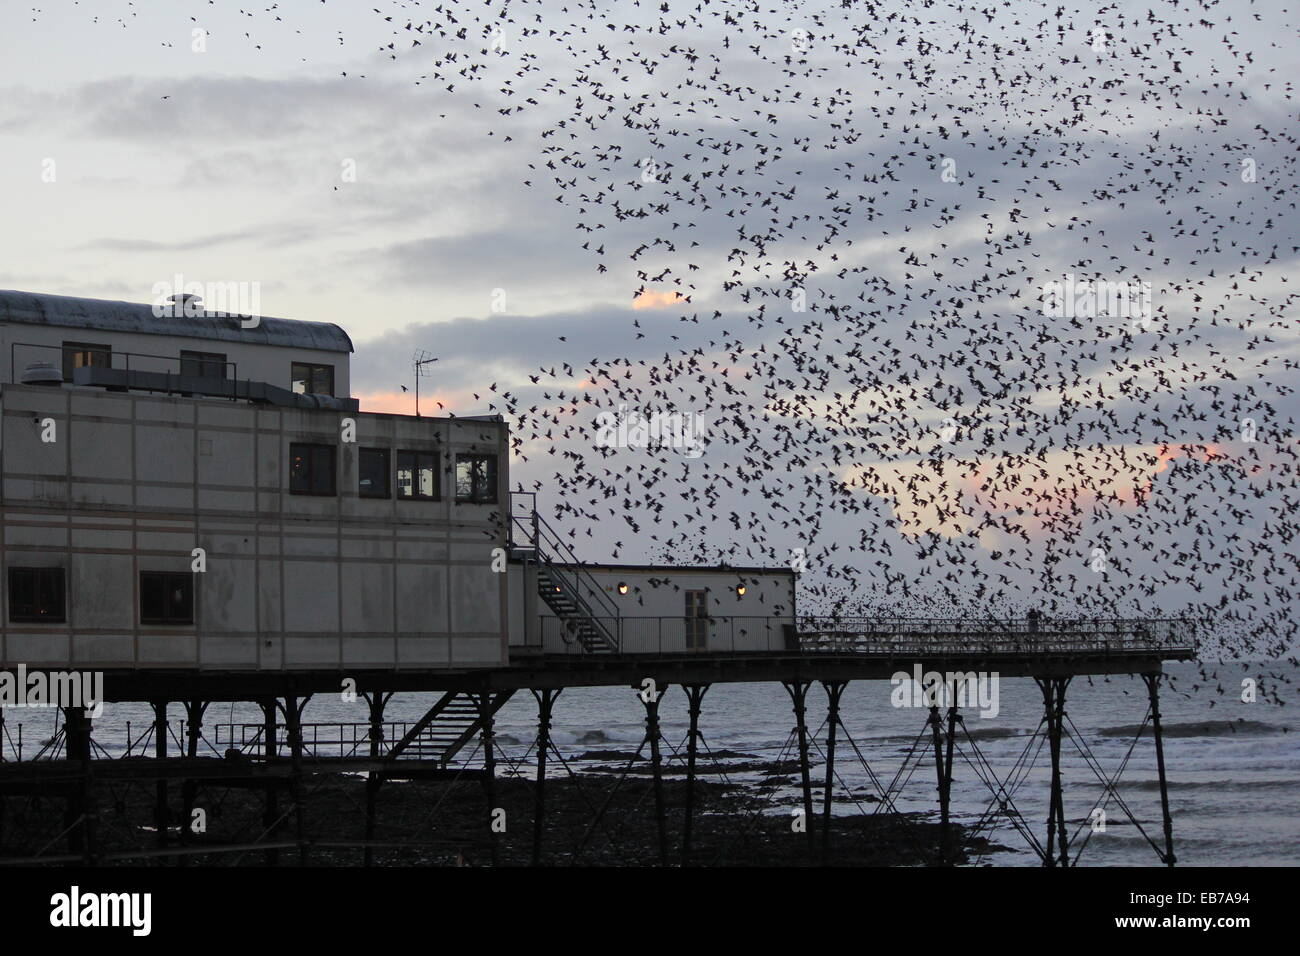 Aberystwyth Wales. A murmuration of starlings return to roost on the pier at sundown. - Stock Image